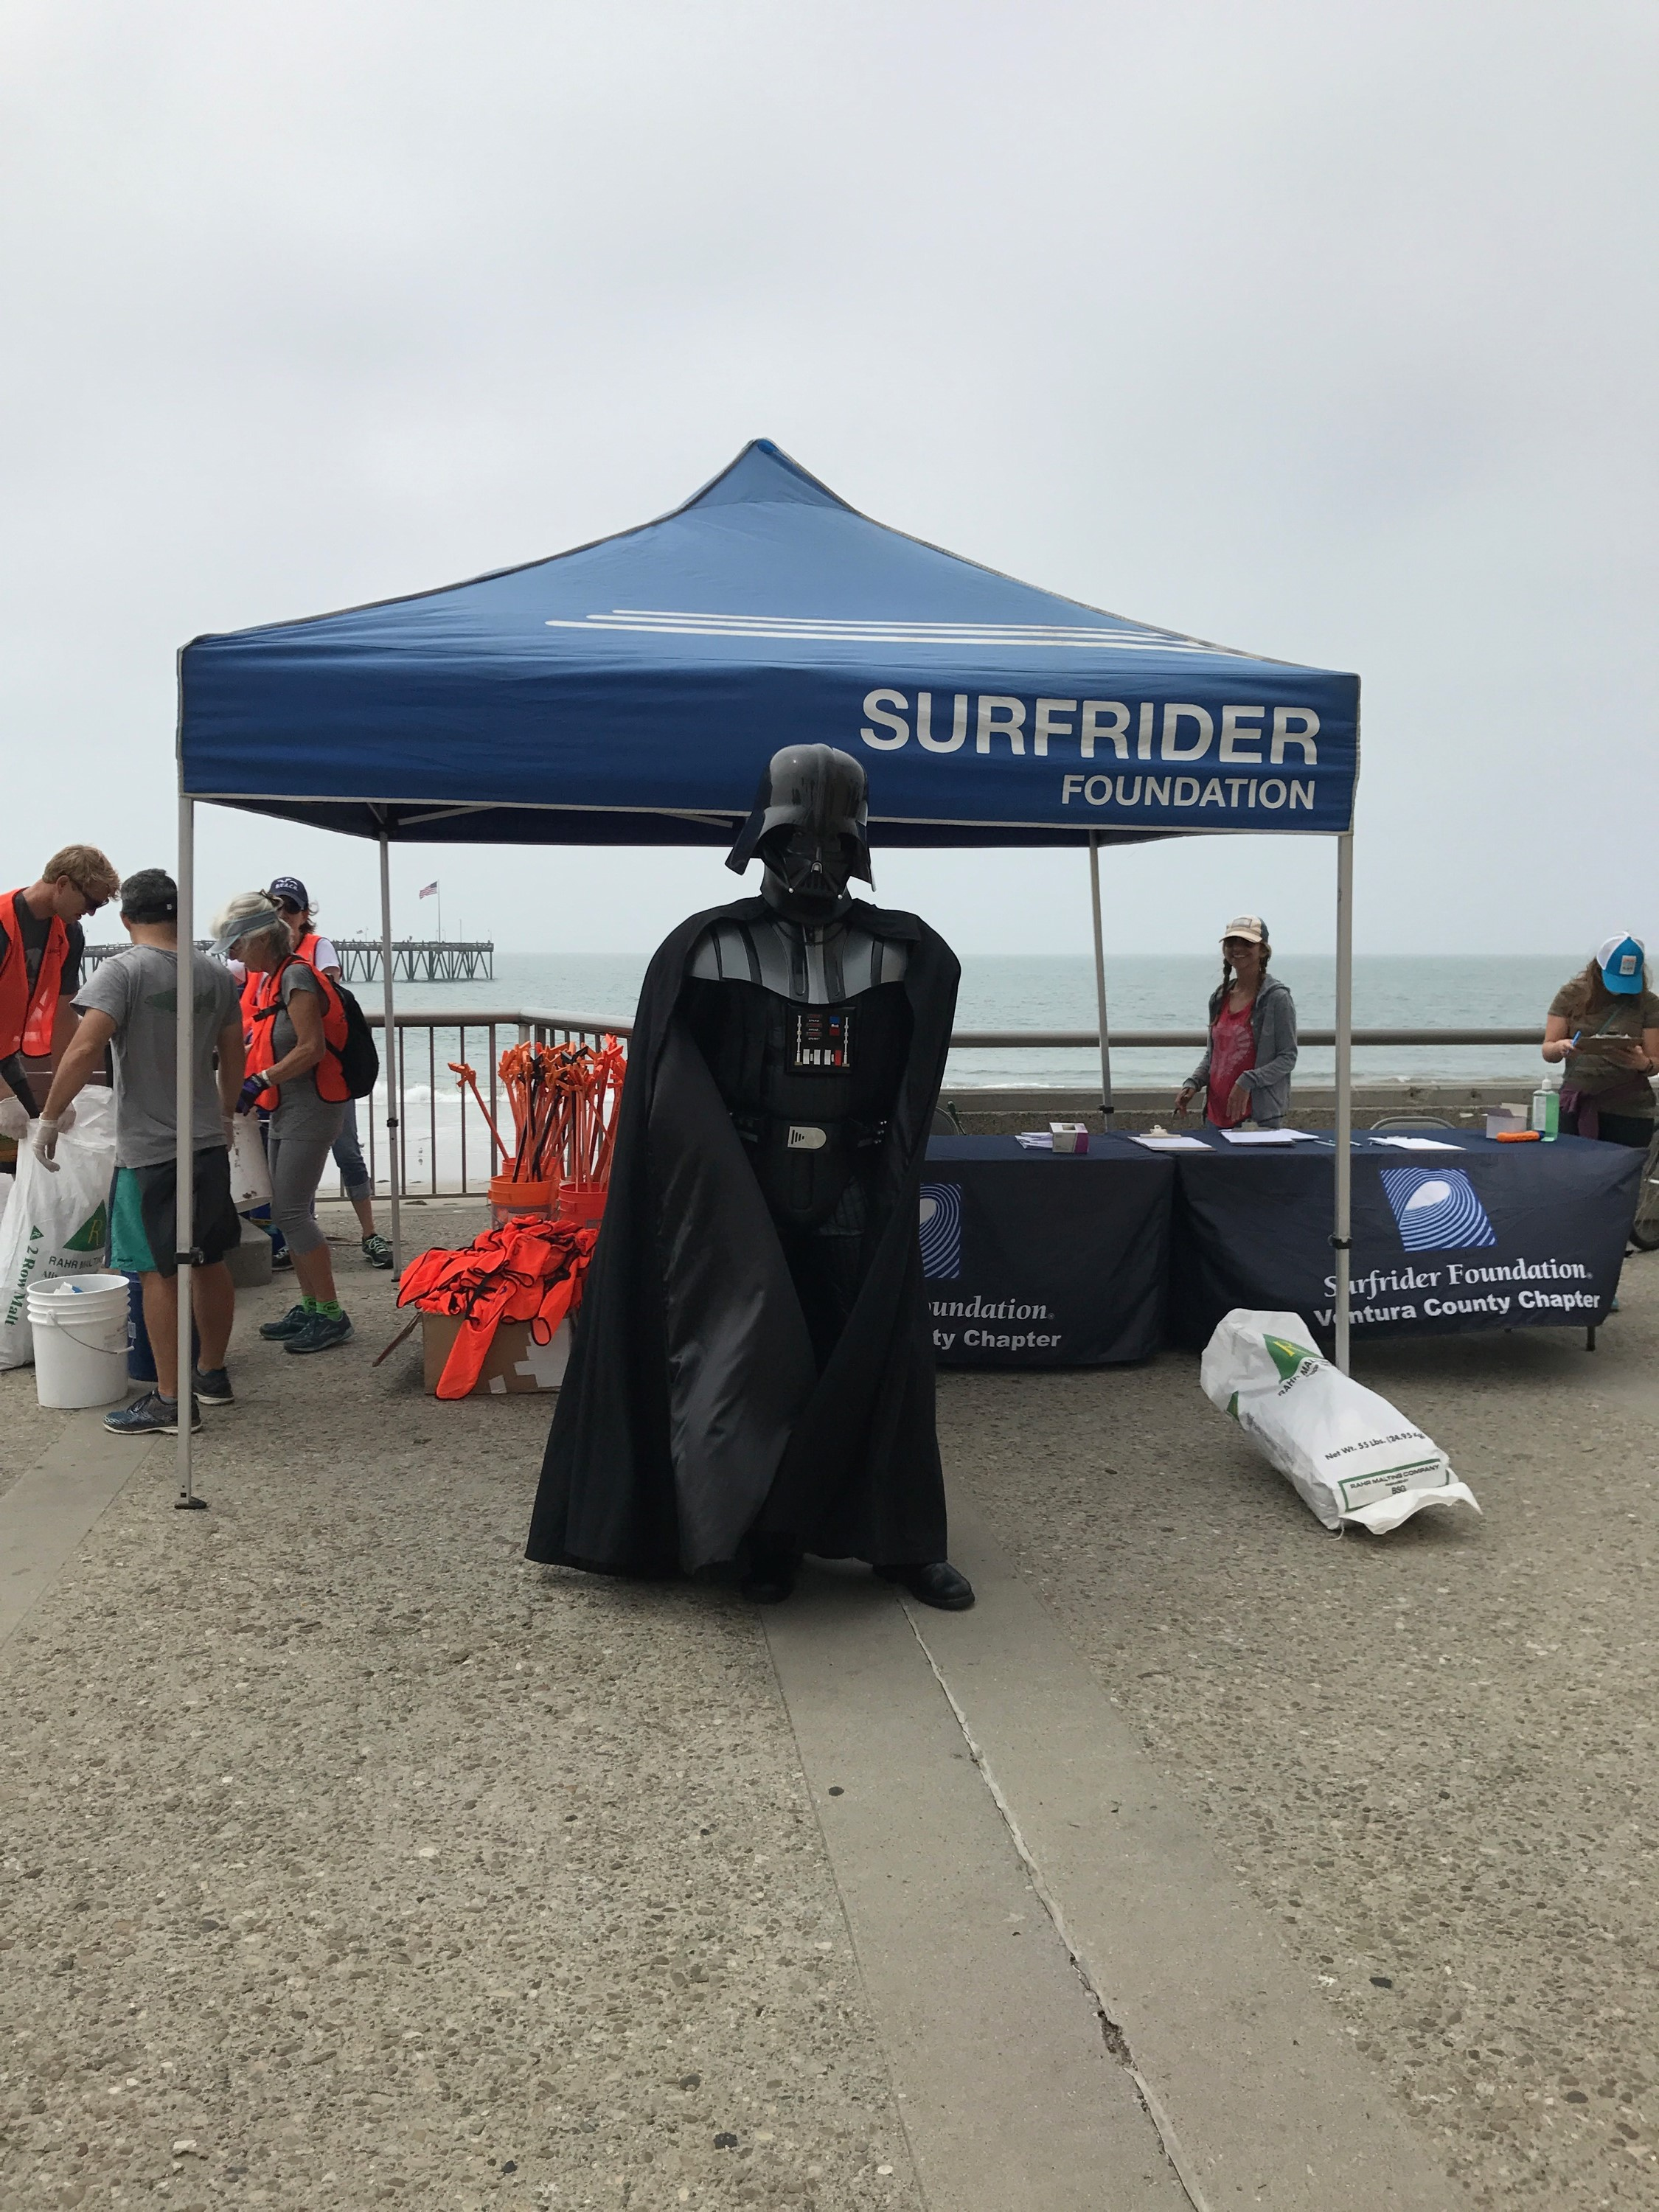 Darth Vader at the beach